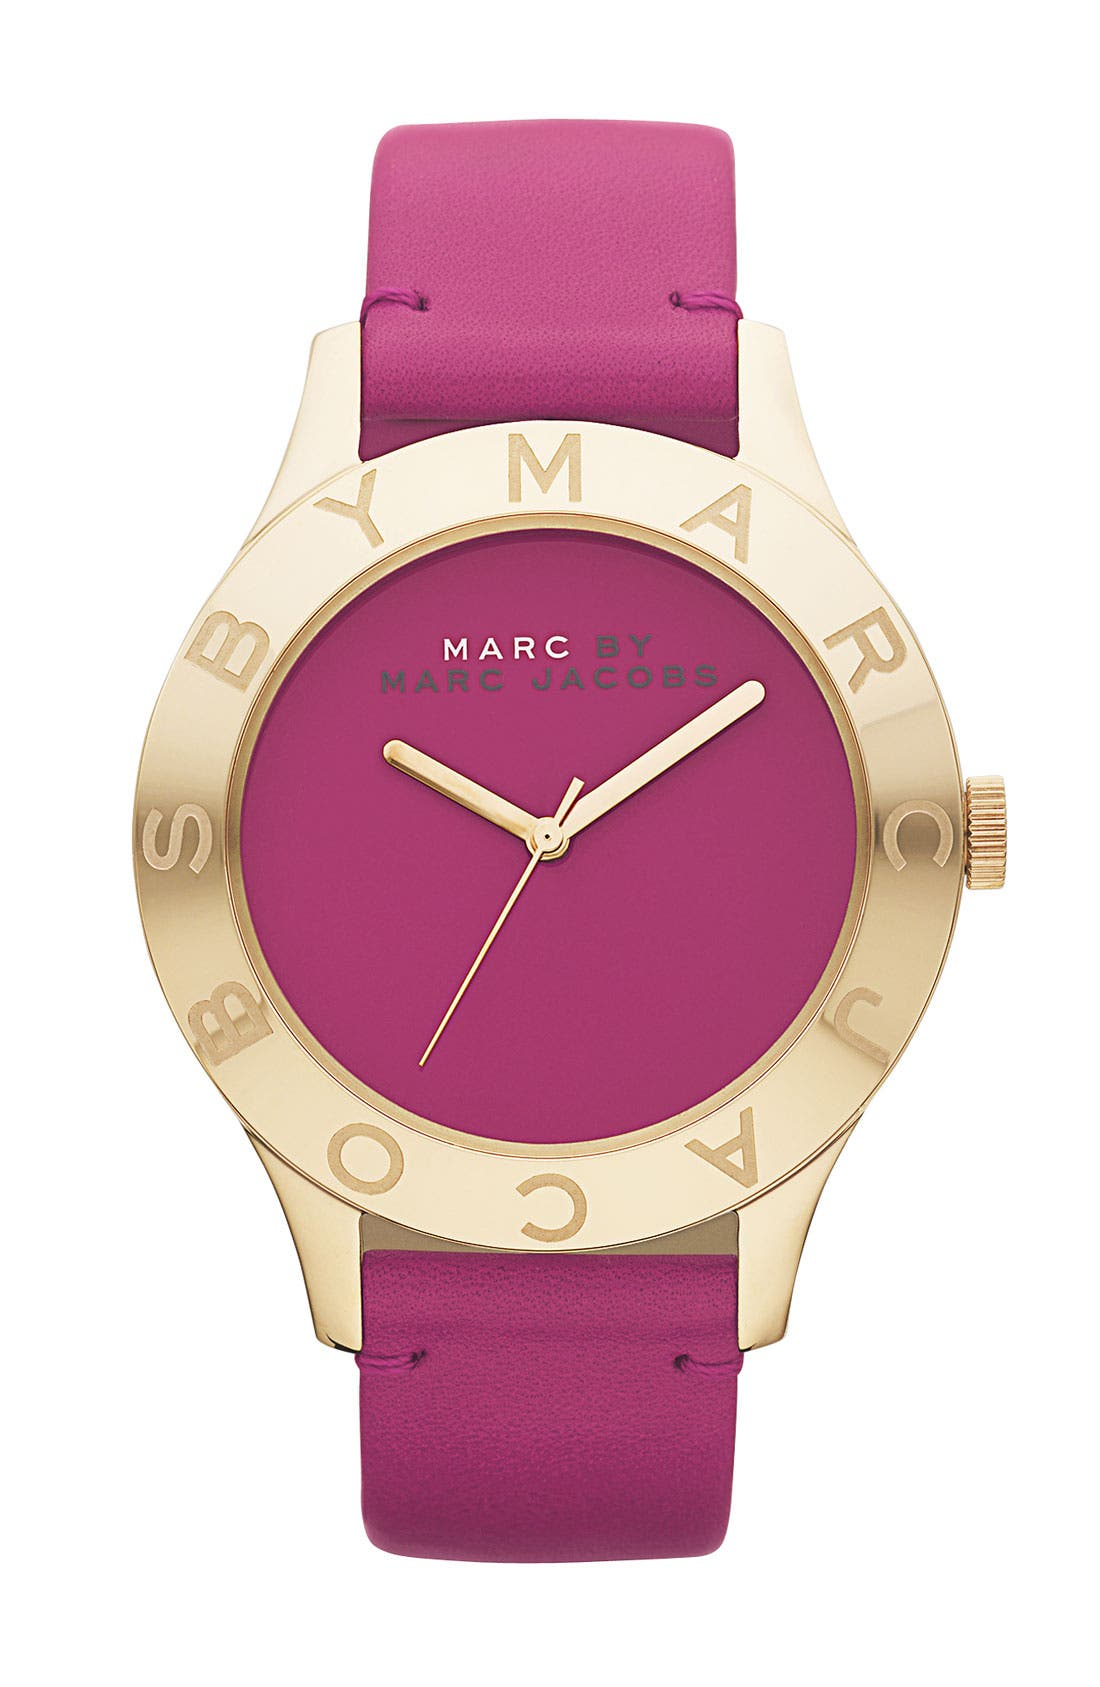 Main Image - MARC JACOBS 'Blade' Round Leather Strap Watch